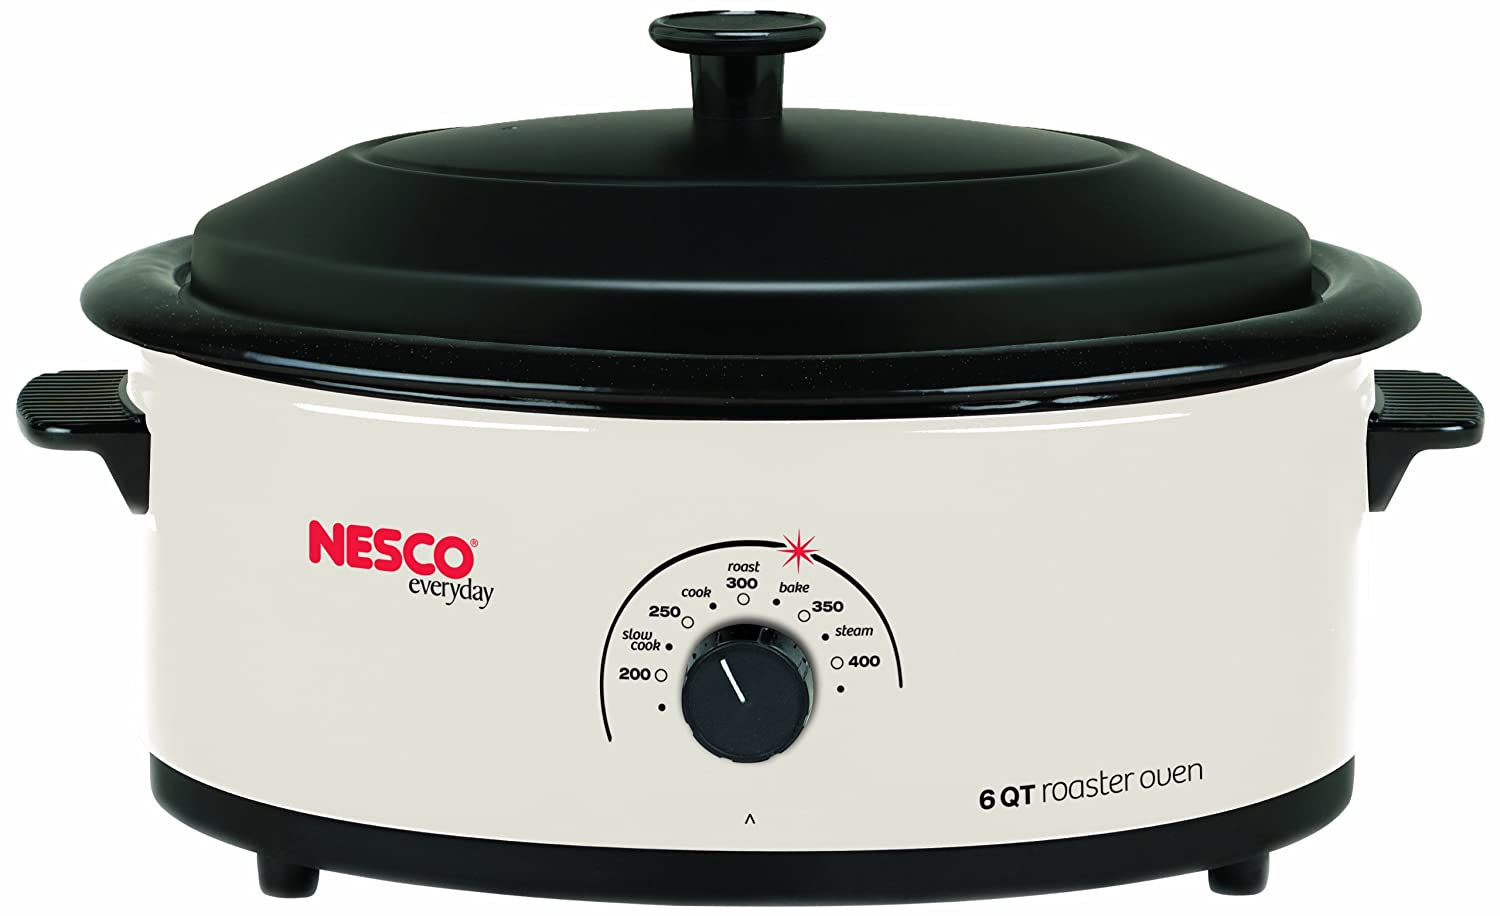 Nesco 4816-14 Roaster Oven with Porcelain Cookwell